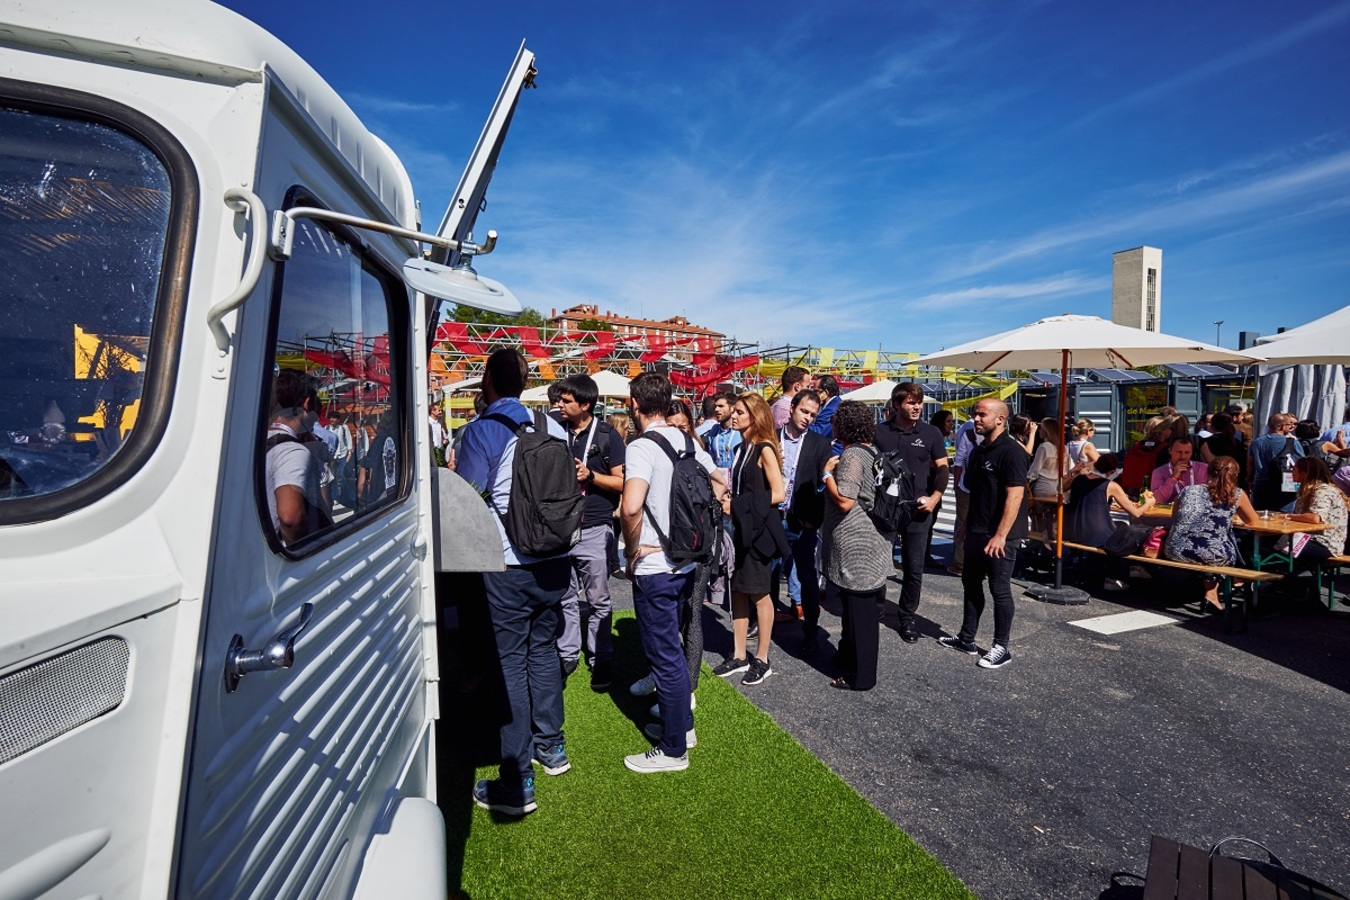 Foodtruck - SouthSummit17